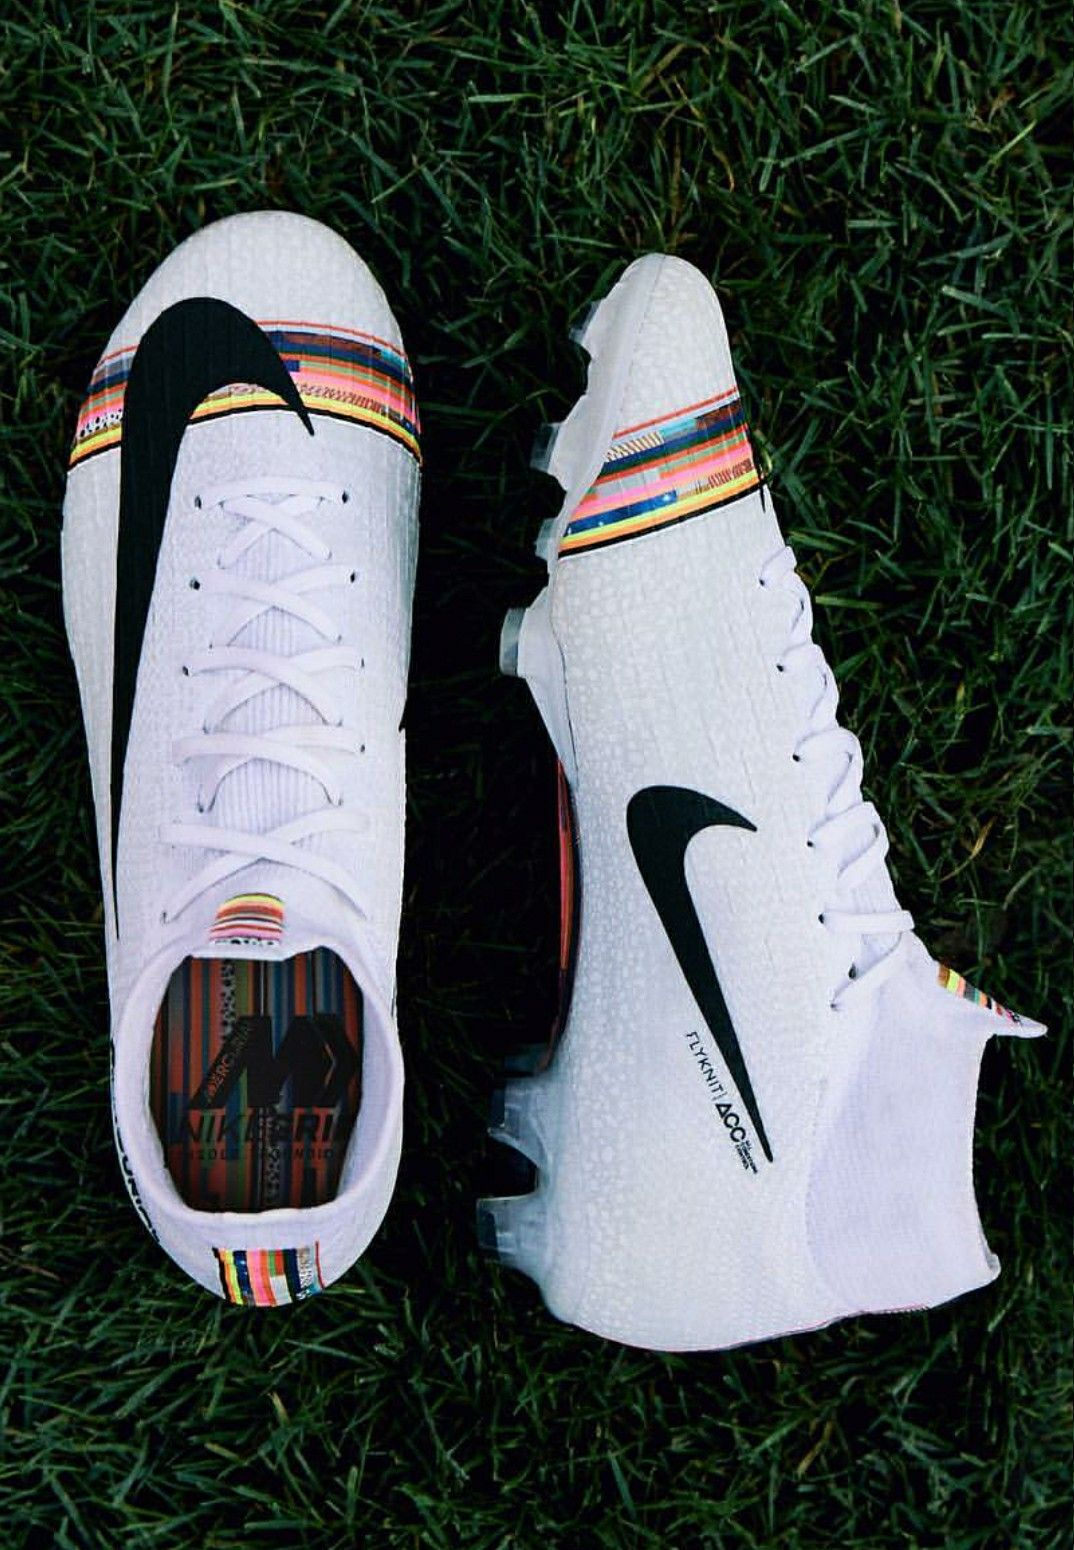 Pin by Naomi on lacrosse Girls soccer cleats, Soccer